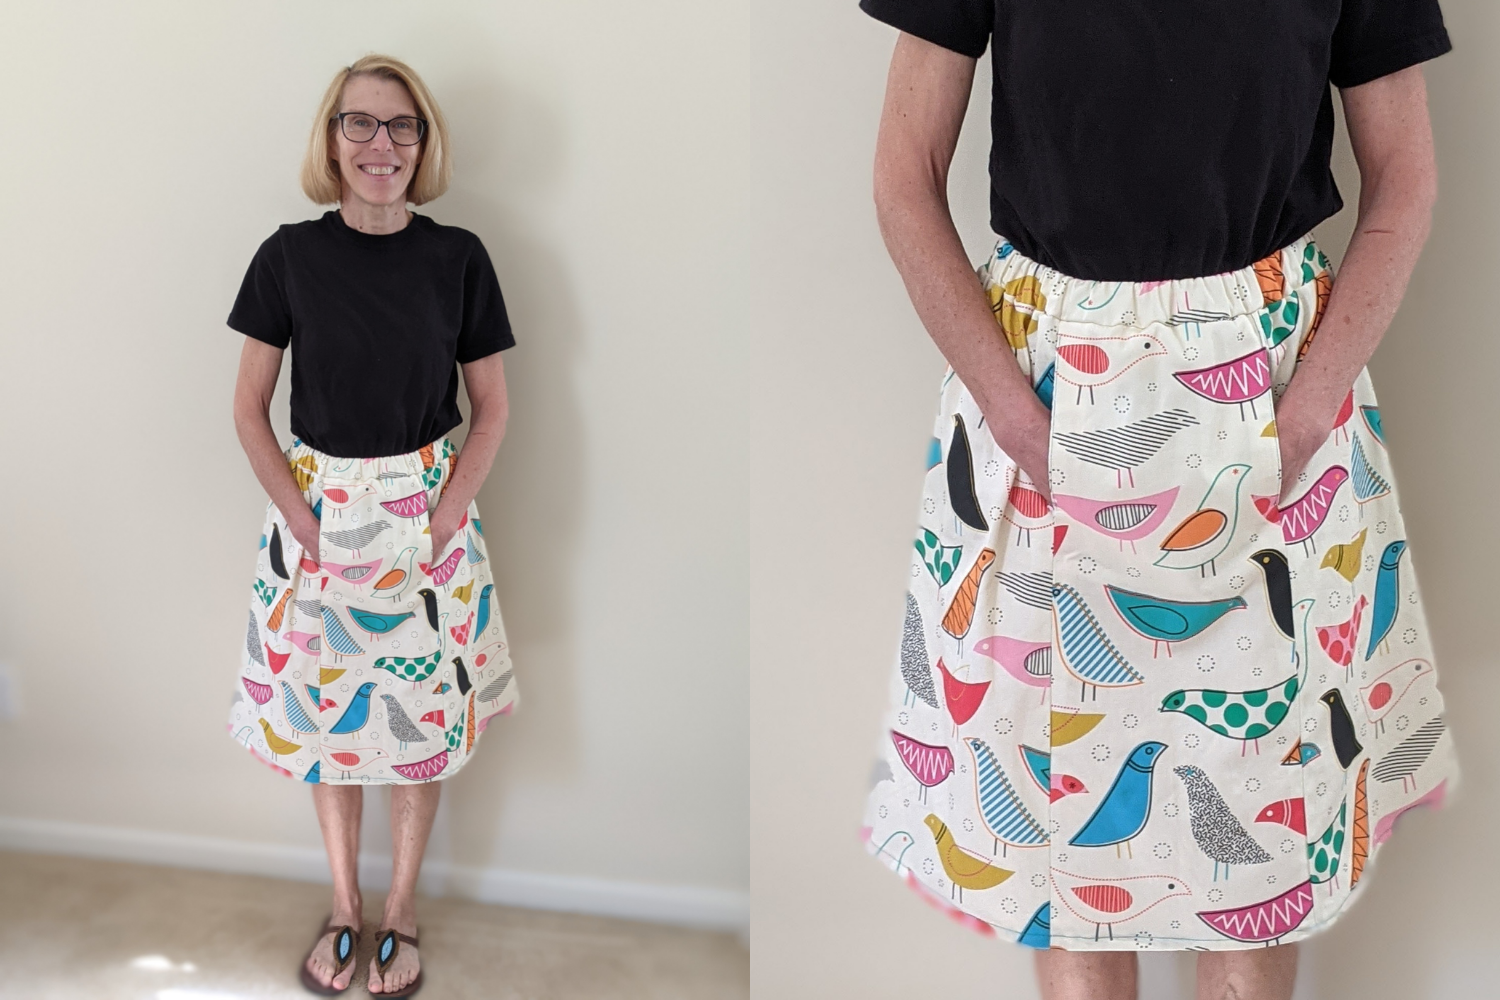 Model wearing white skirt with colorful birds